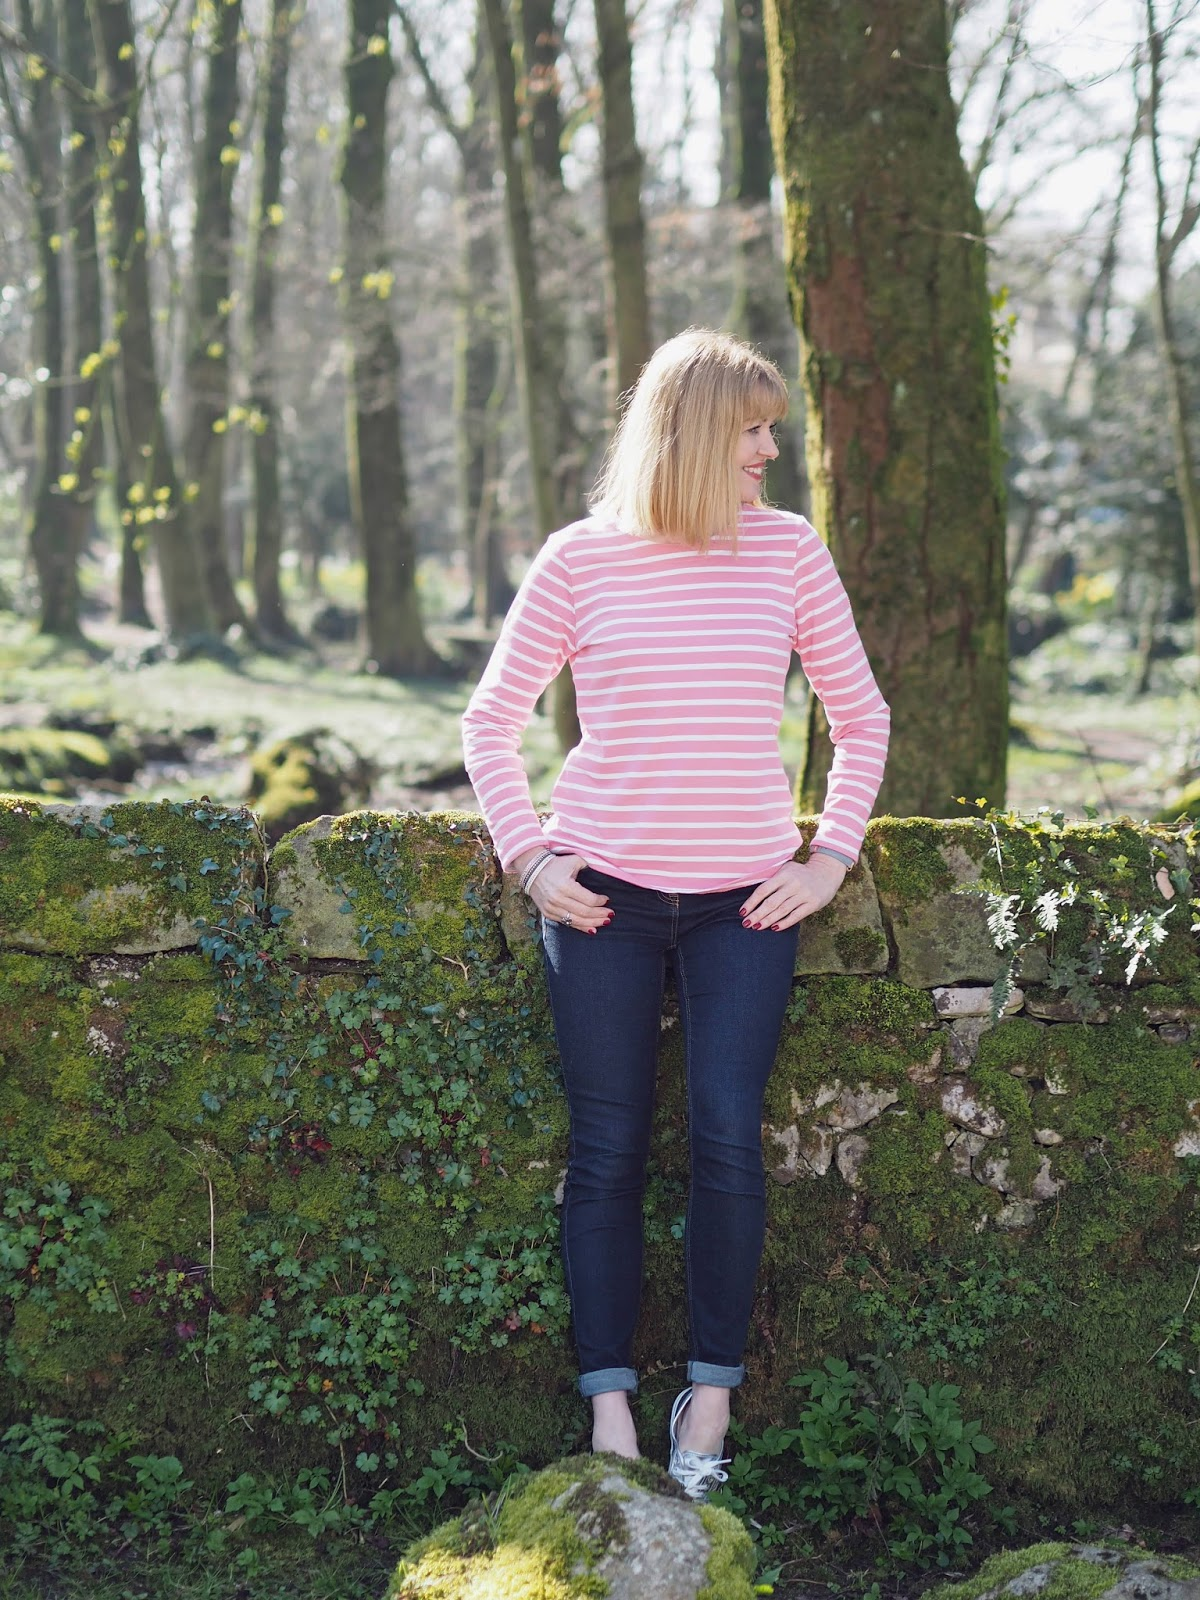 Full length image of What Lizzy Loves wearing pink and white striped breton top by Tulchan with skinny jeans and silver Superga pumps